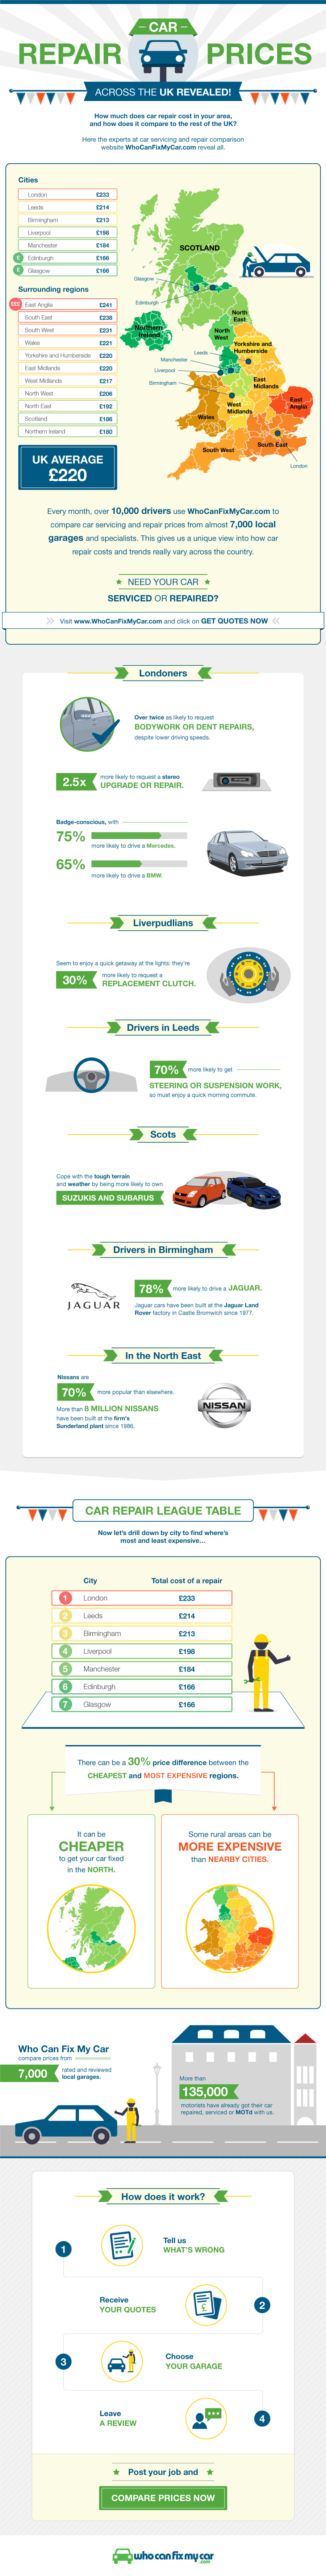 Car Repair Prices Across The UK Revealed #infographic